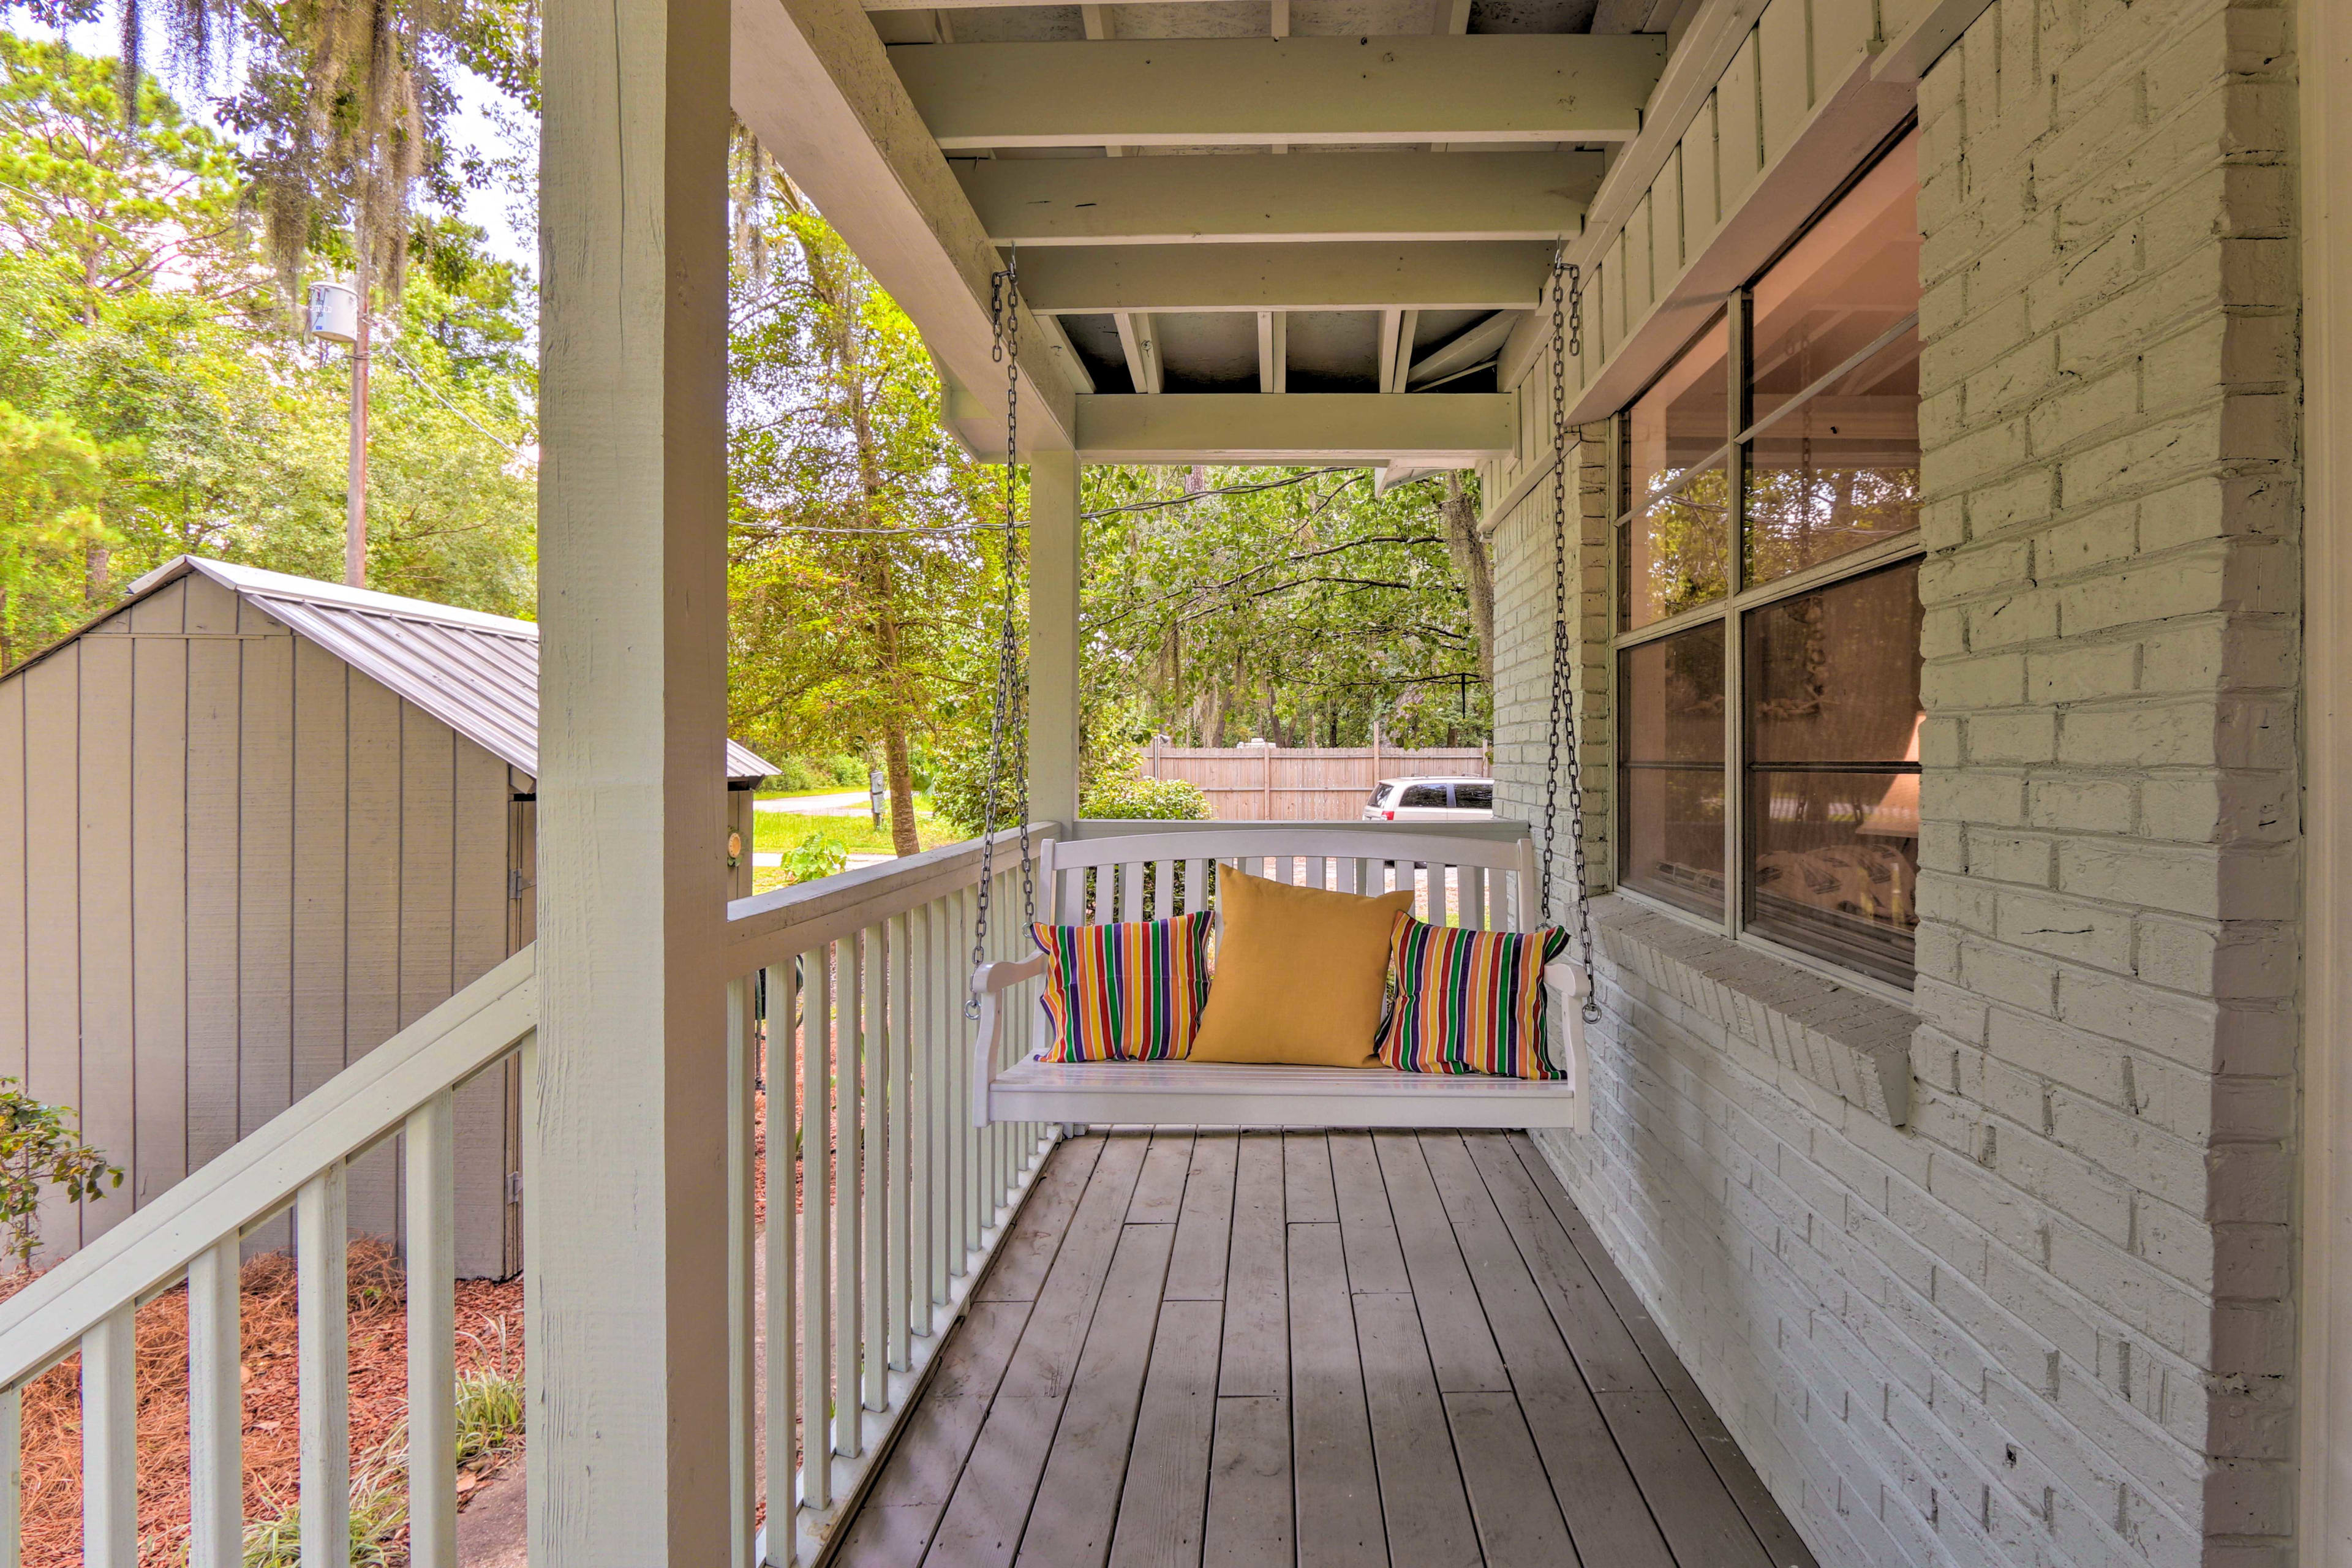 Swing your worries away on the porch swing.